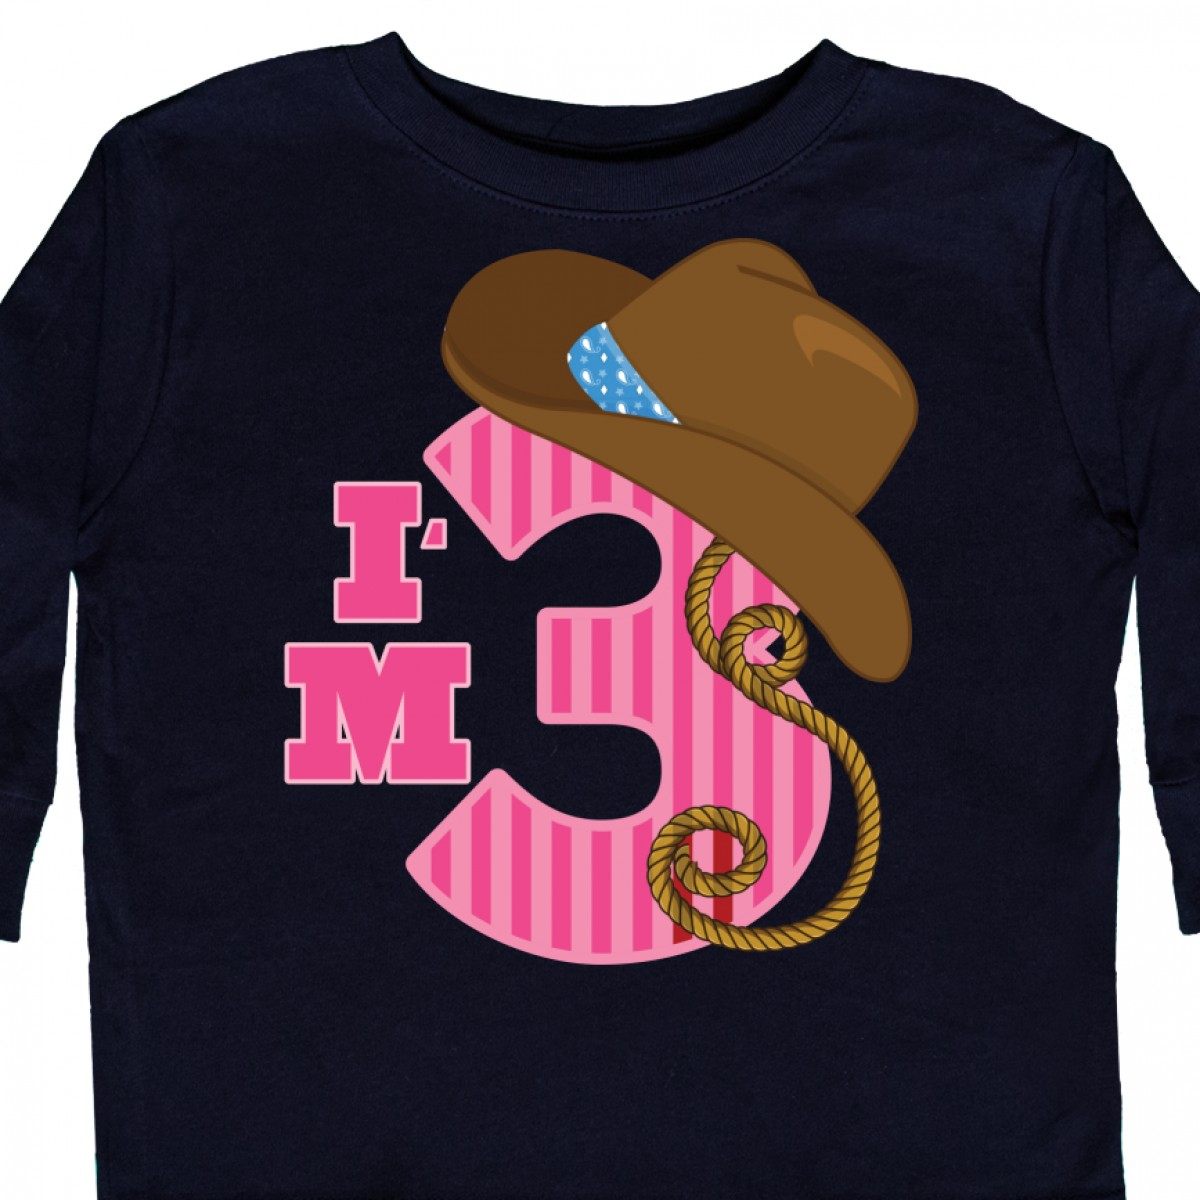 Colorful Unicorn Unisex 100/% Cotton Childrens 3//4 Sleeves T-Shirt Top Tees 2T~5//6T